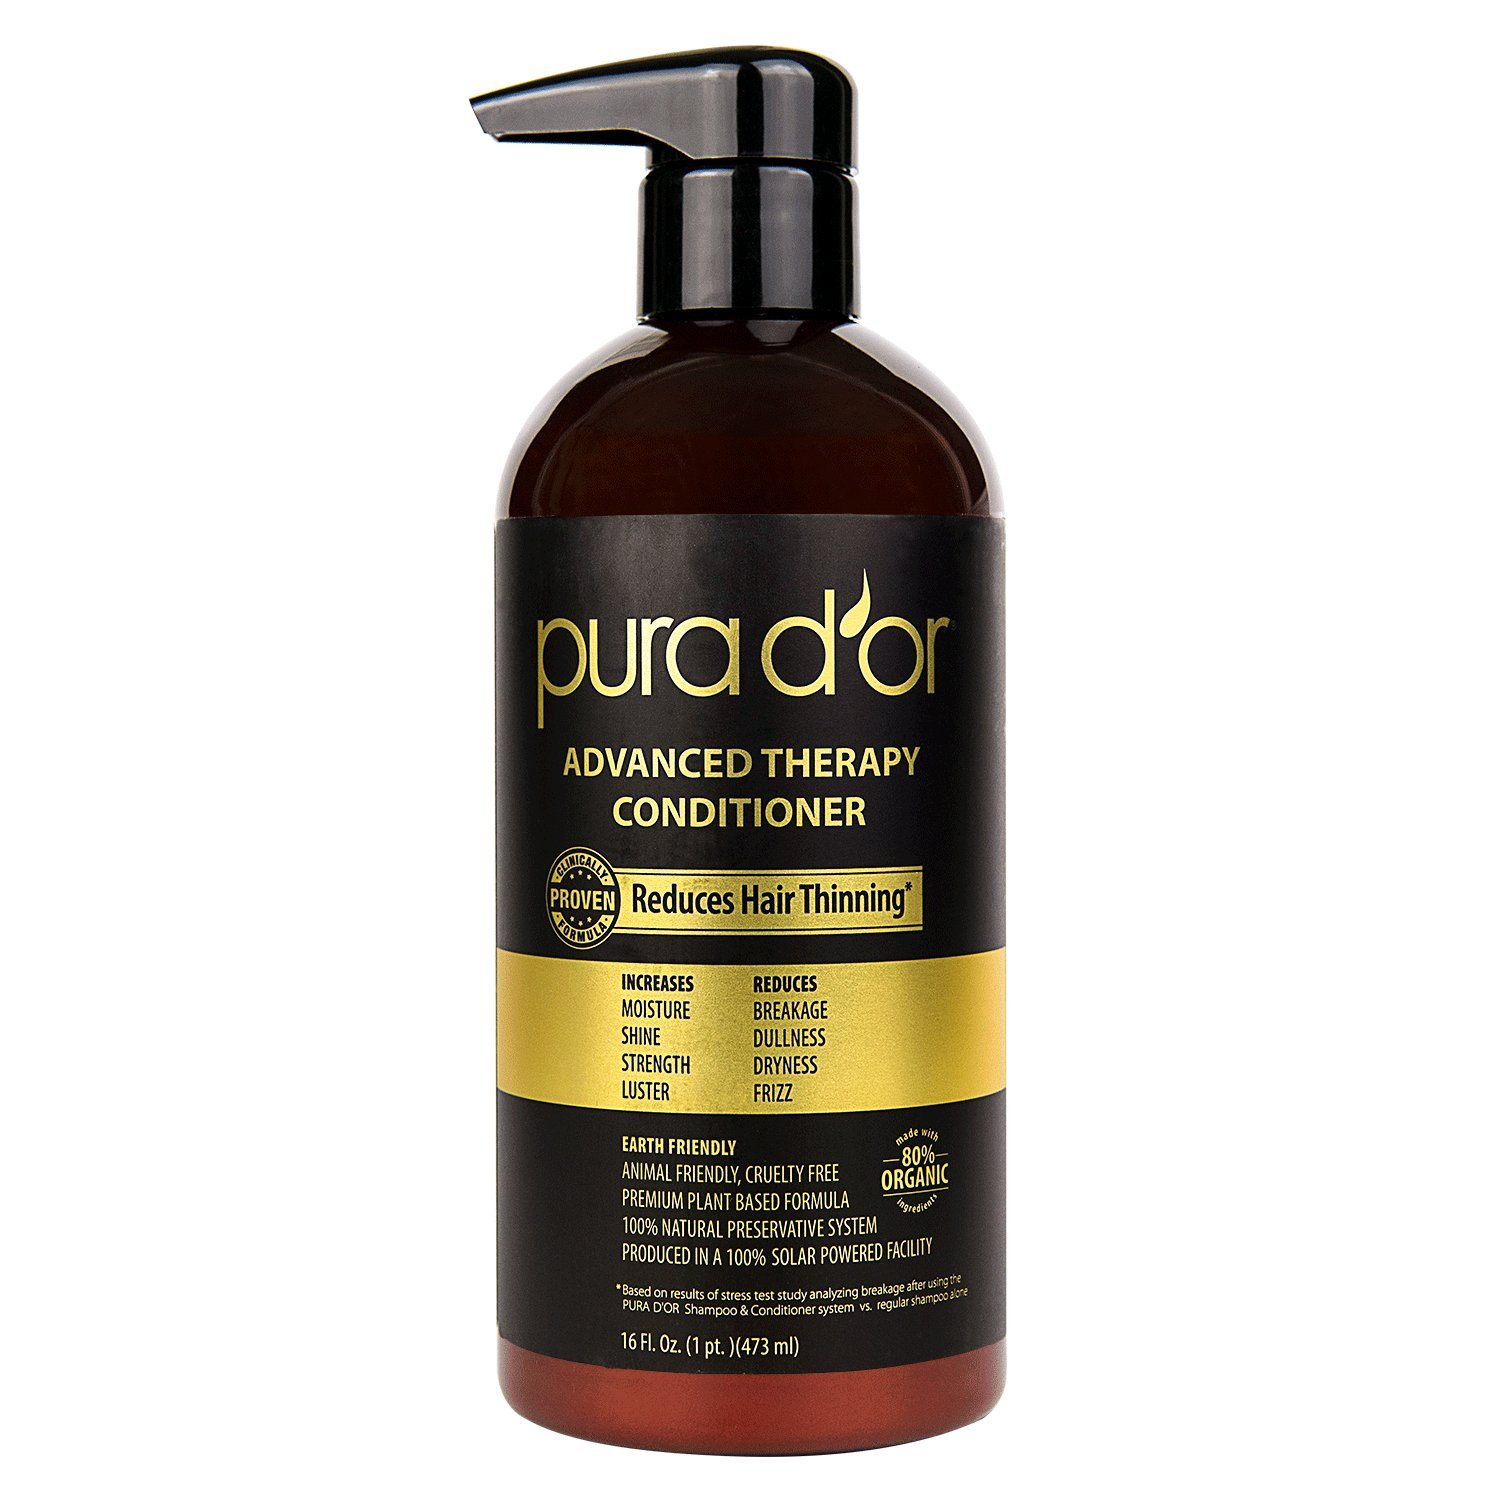 PURA D'OR Advanced Therapy Conditioner Increases Moisture and Strength, Infused with Premium Organic Argan Oil & Aloe Vera, 16 Fl Oz